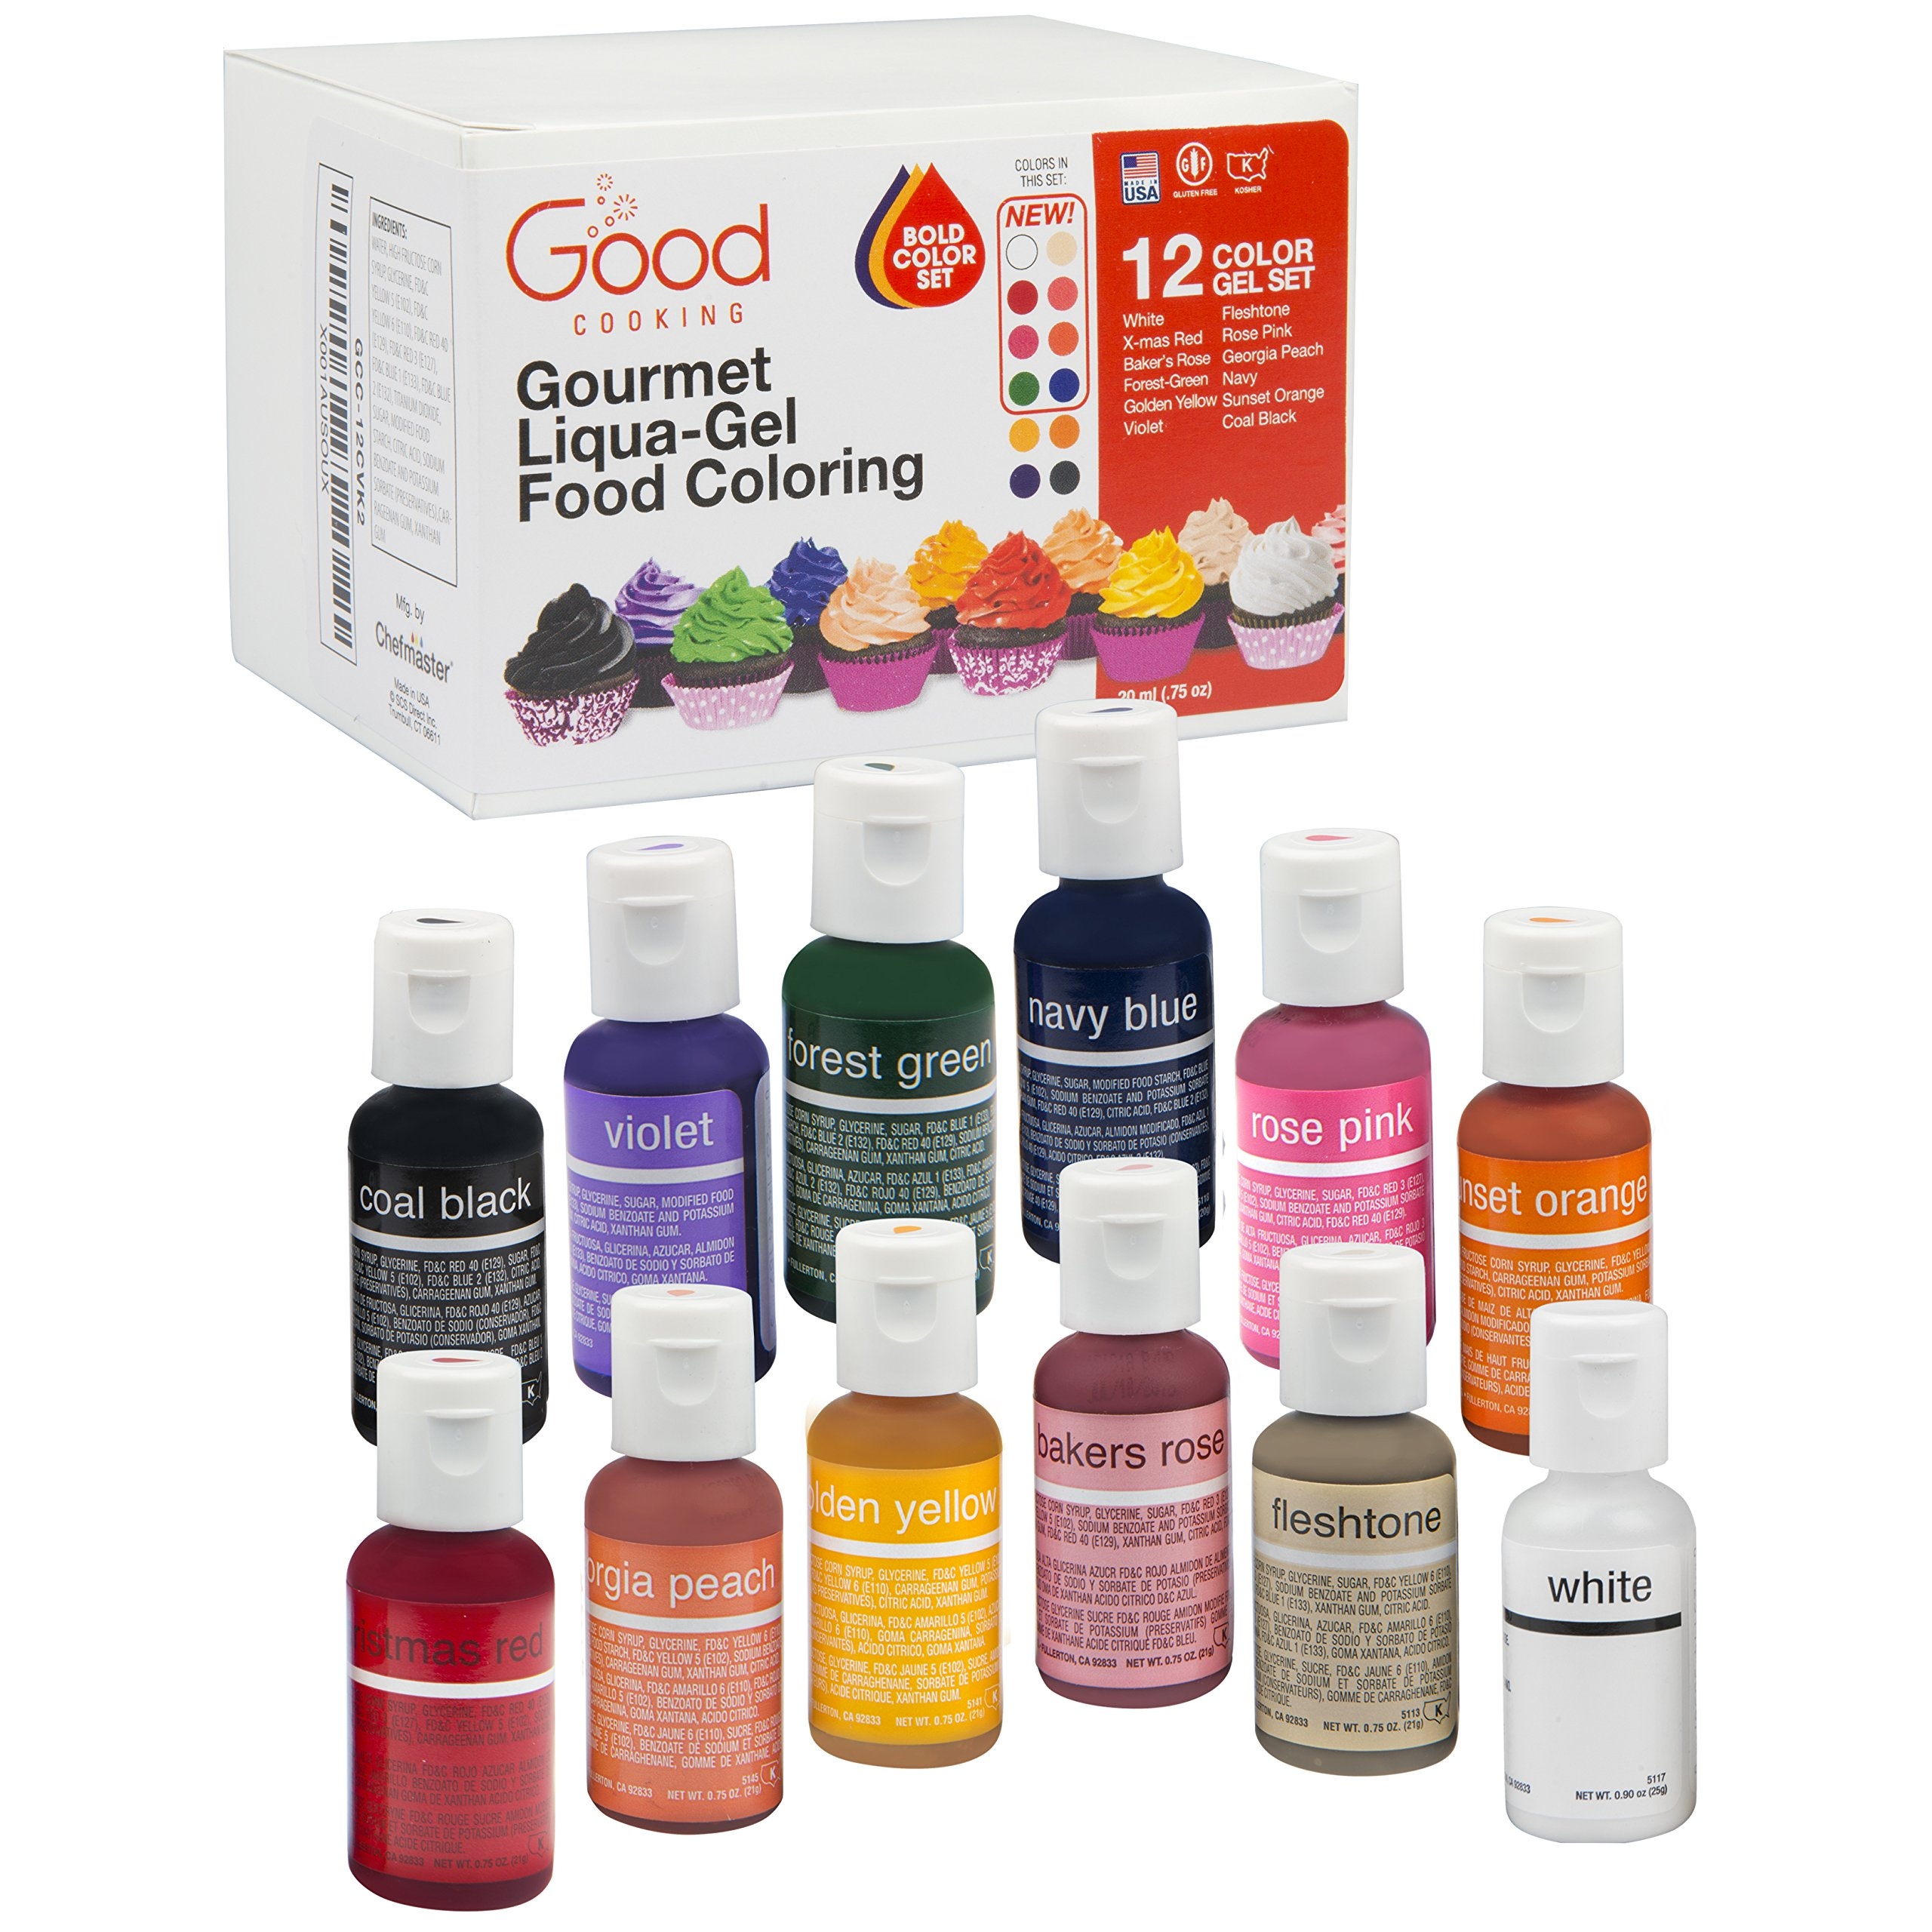 Food Coloring Liqua-Gel - 12 Color''Bold'' Variety Kit 2 in .75 fl. oz. (20ml) Bottles